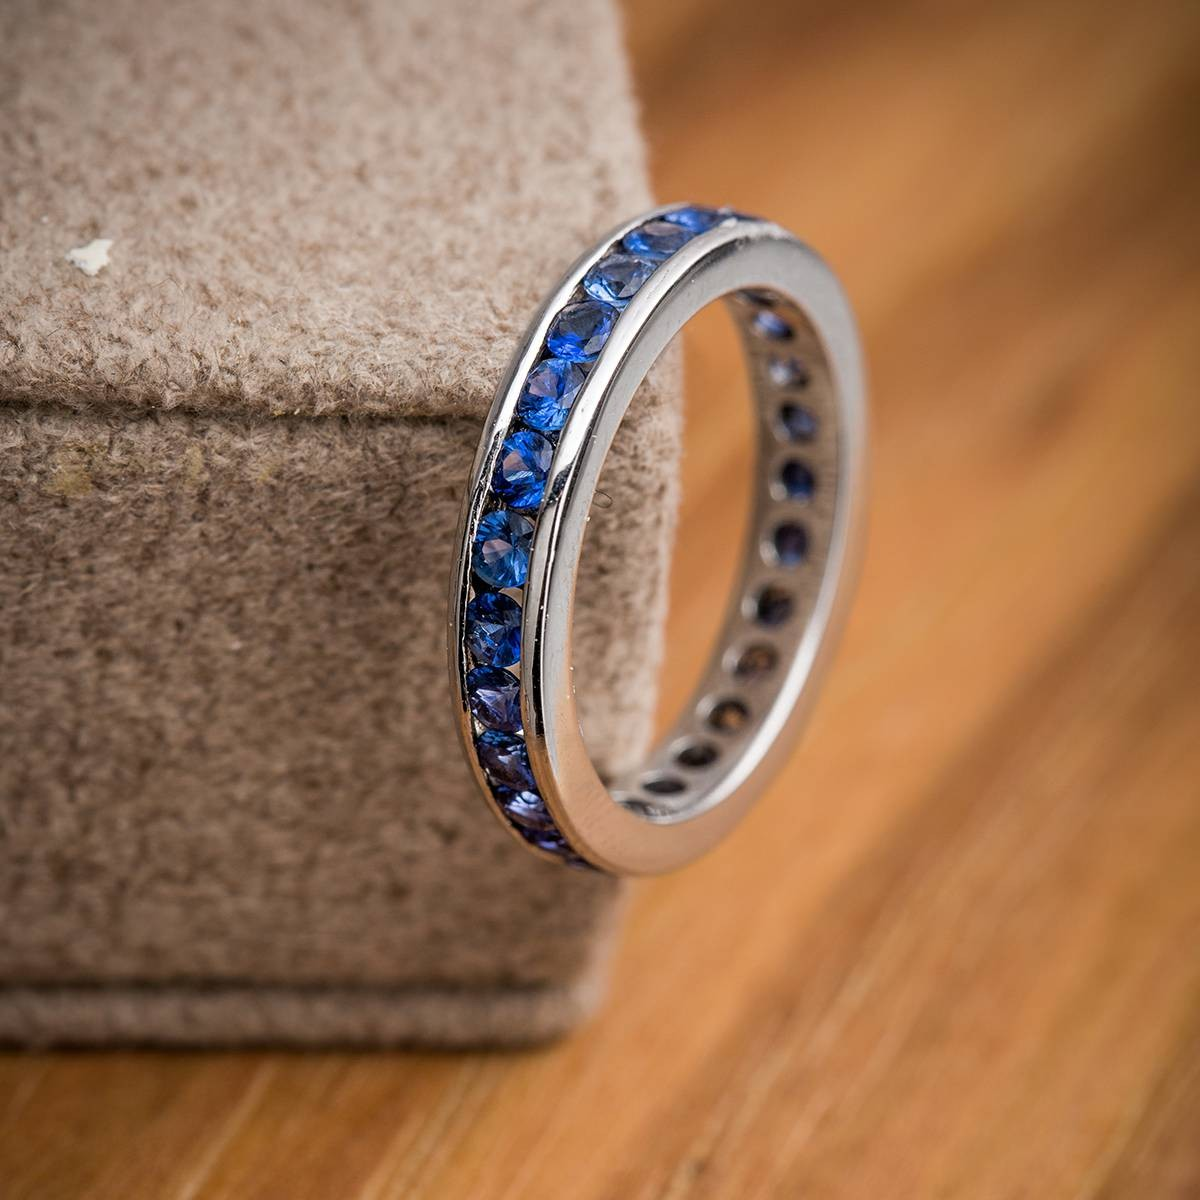 Vintage 18k Gold and Sapphire Eternity Band